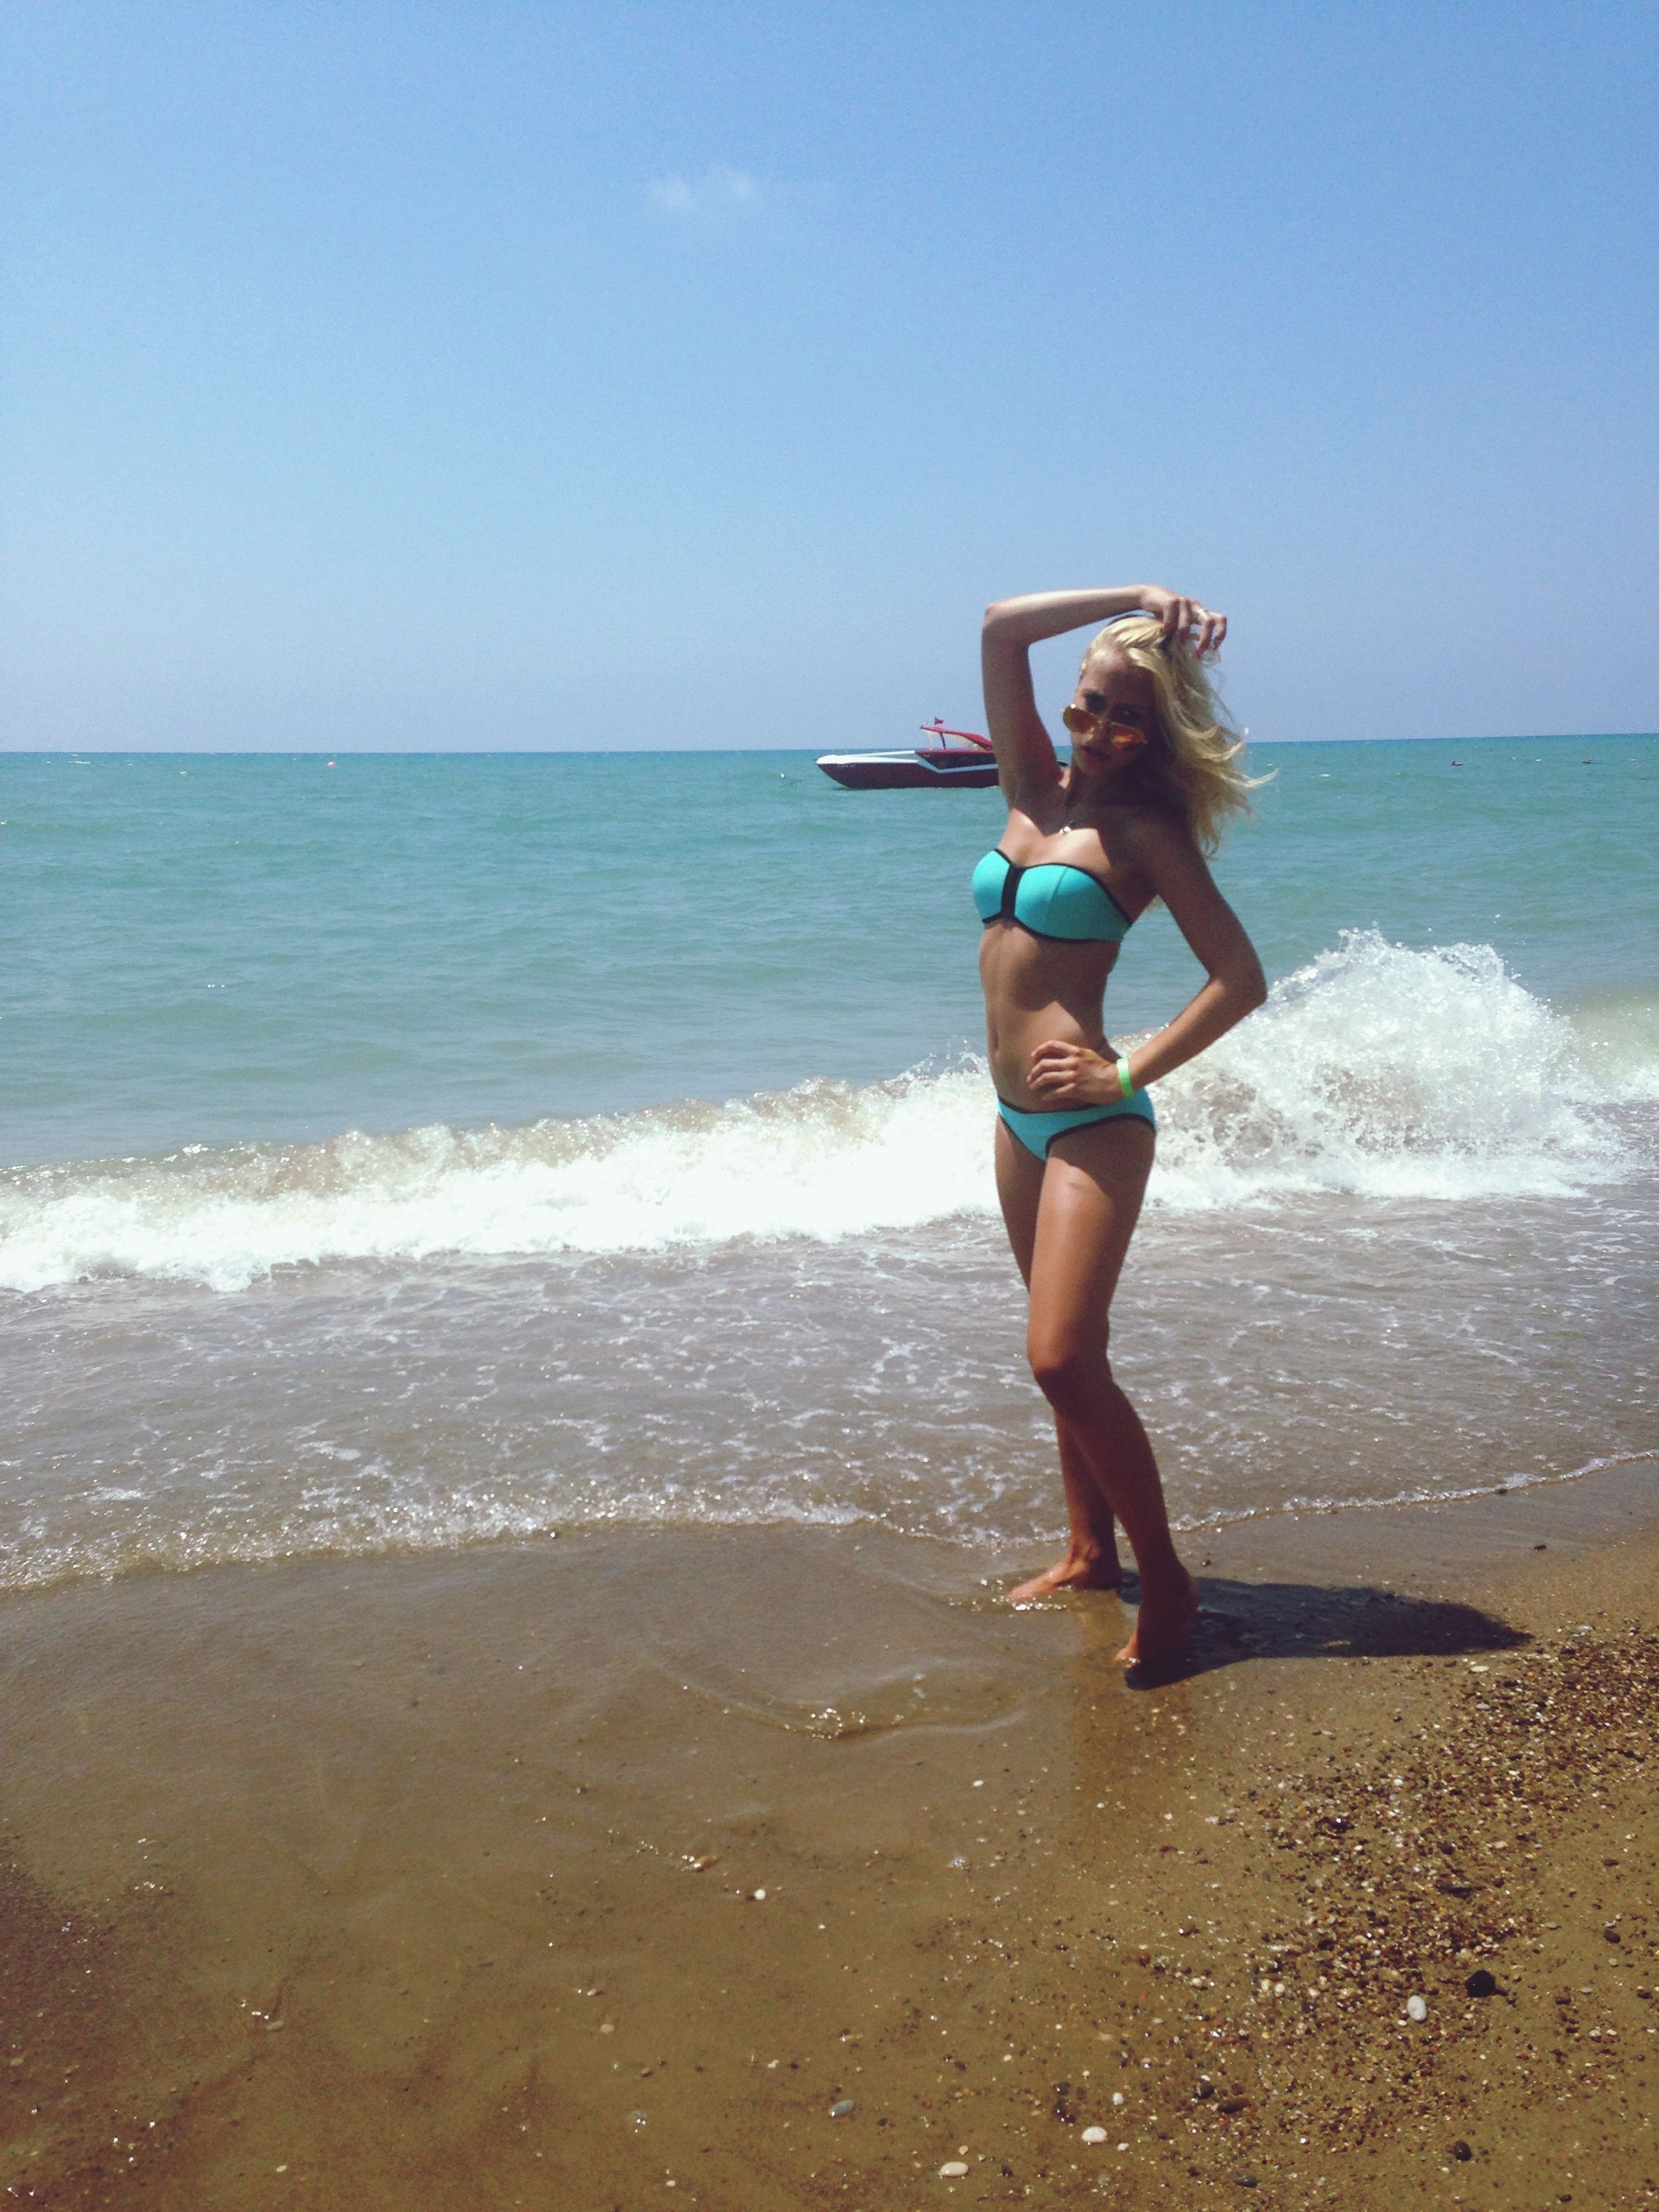 sea, horizon over water, water, beach, leisure activity, lifestyles, full length, shore, young adult, wave, vacations, person, sky, motion, young women, sand, nature, beauty in nature